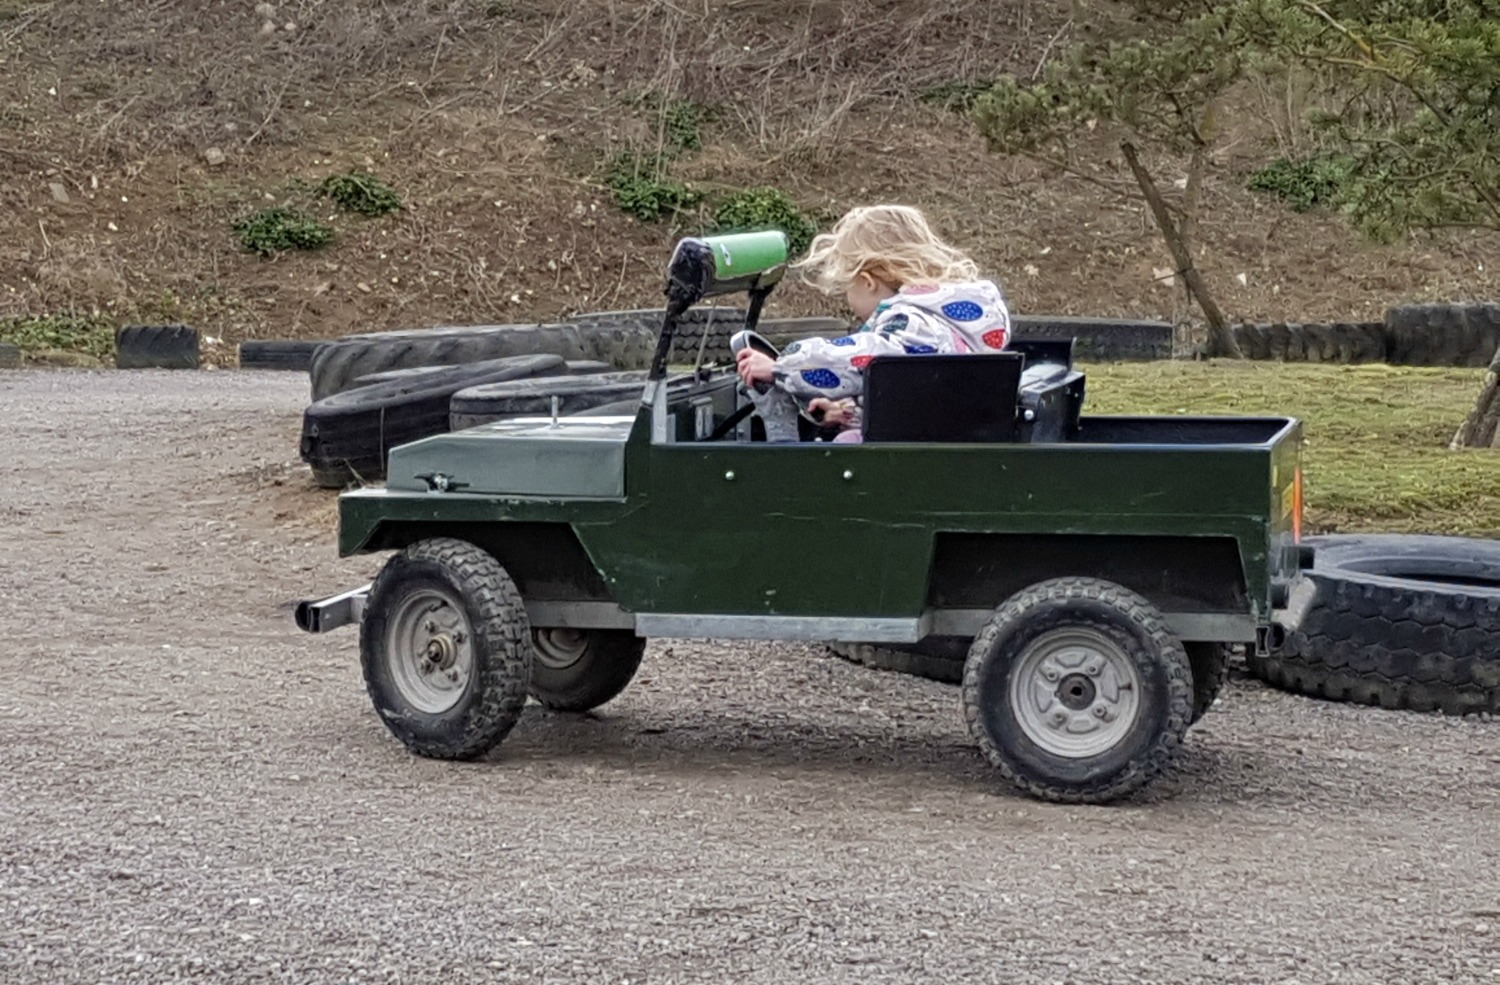 My daughter driving a small Jeep at Diggerland Kent - one of the attractions on this family day out